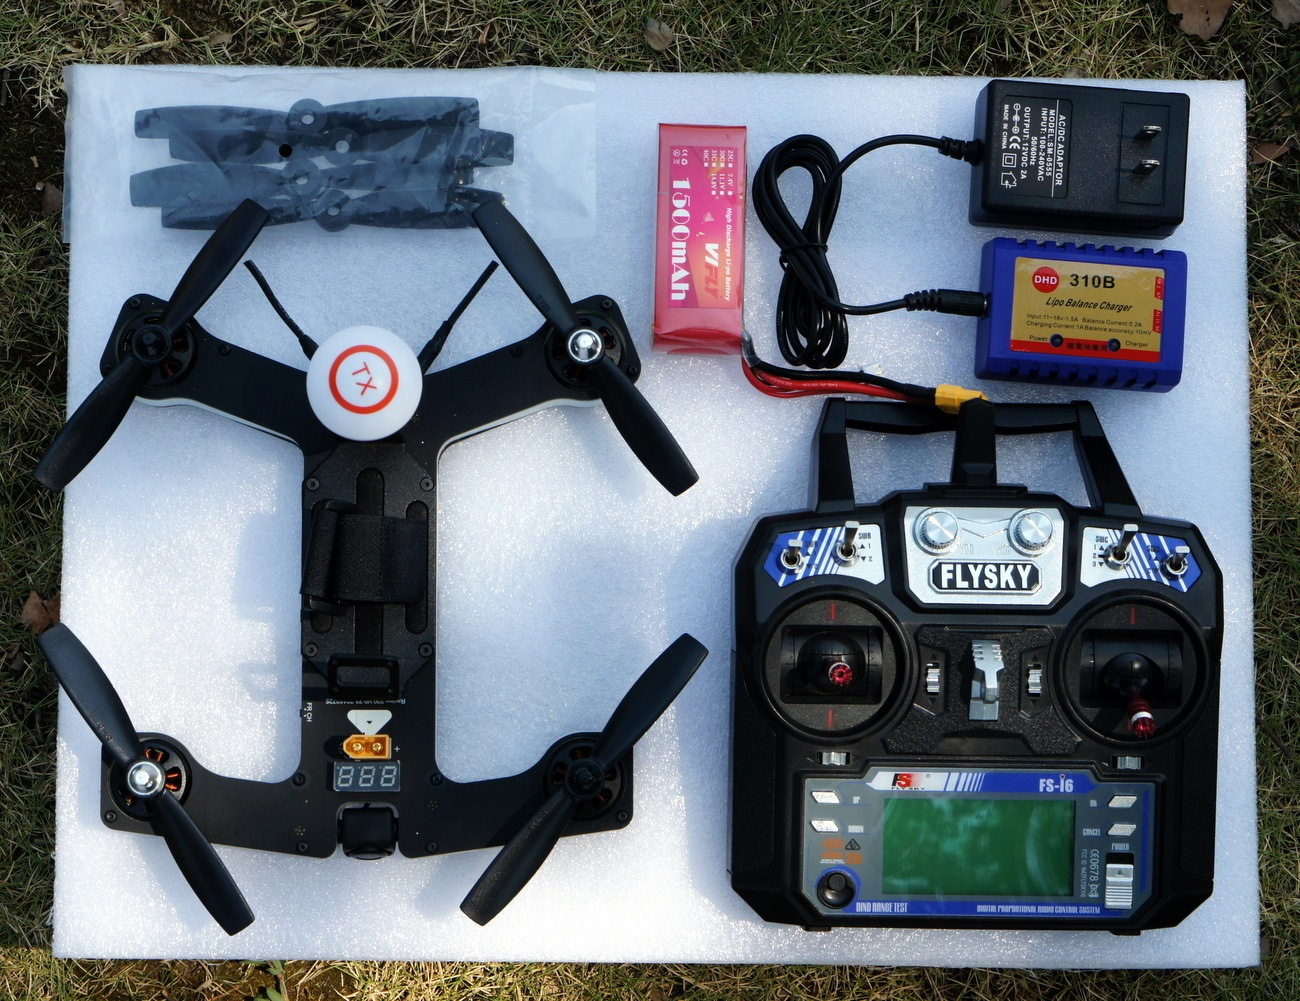 VIFLY R220 – A different kind of FPV Drone